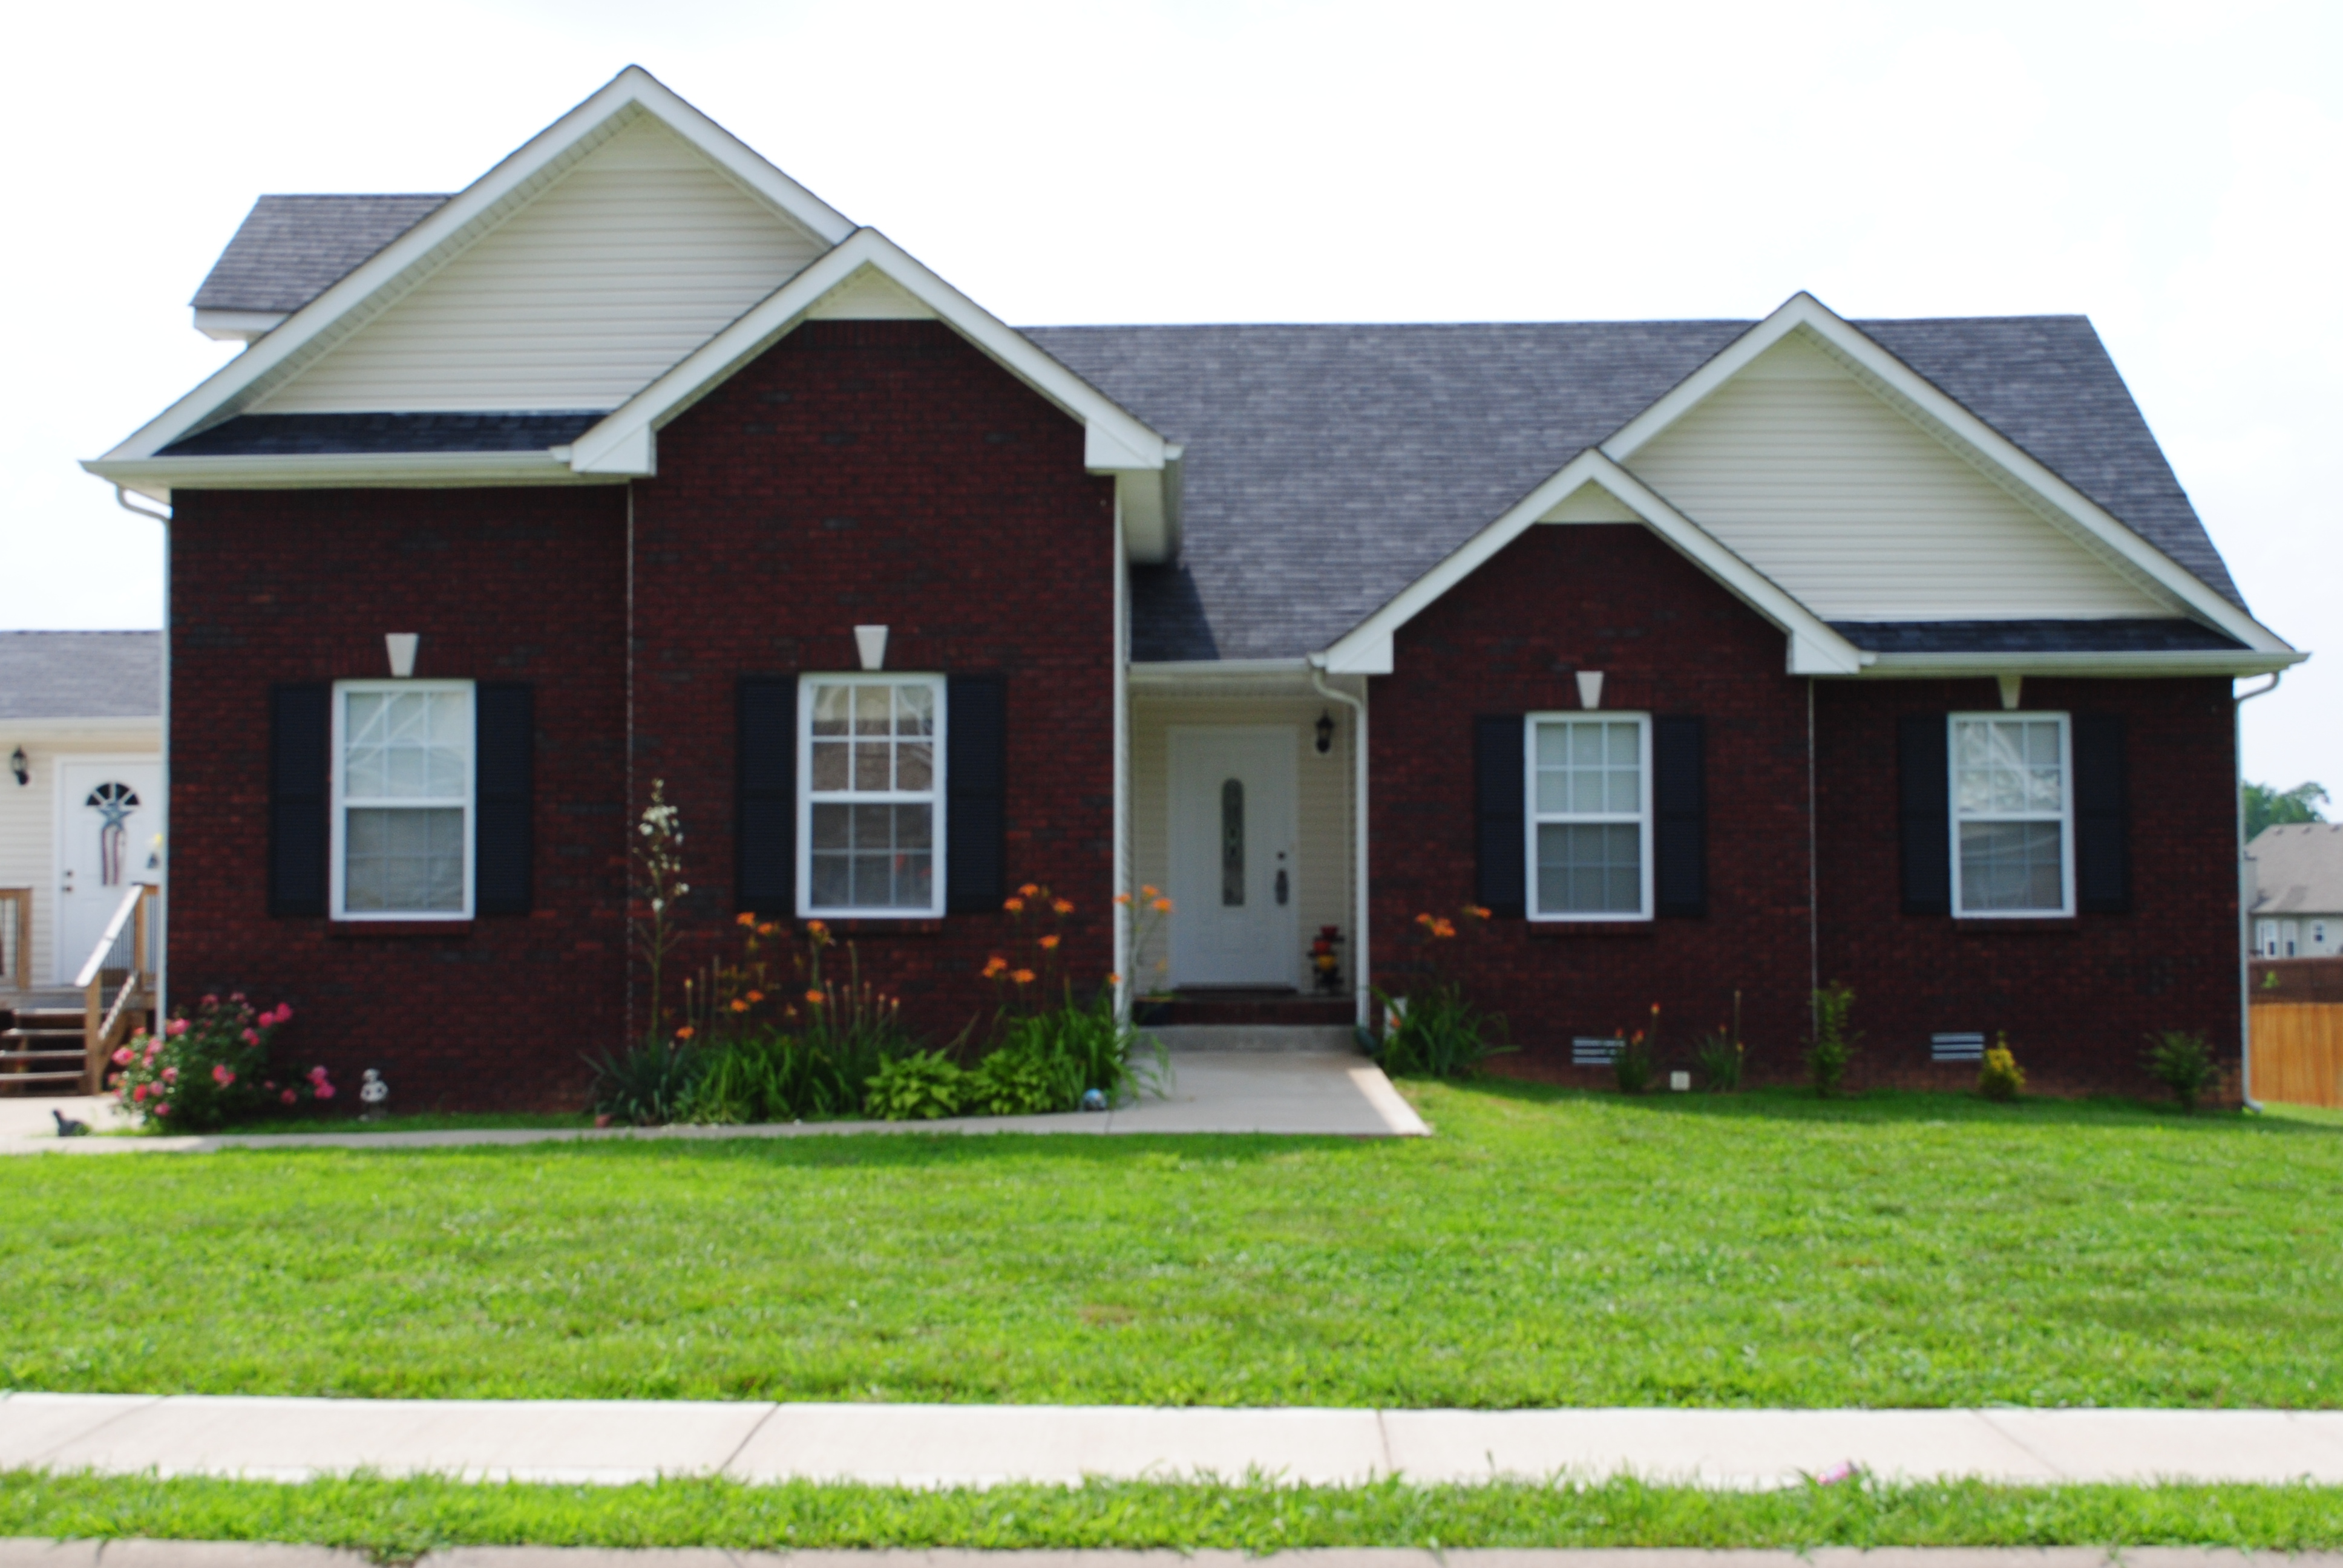 Homes For Sale Clarksville Tennessee Search All Homes